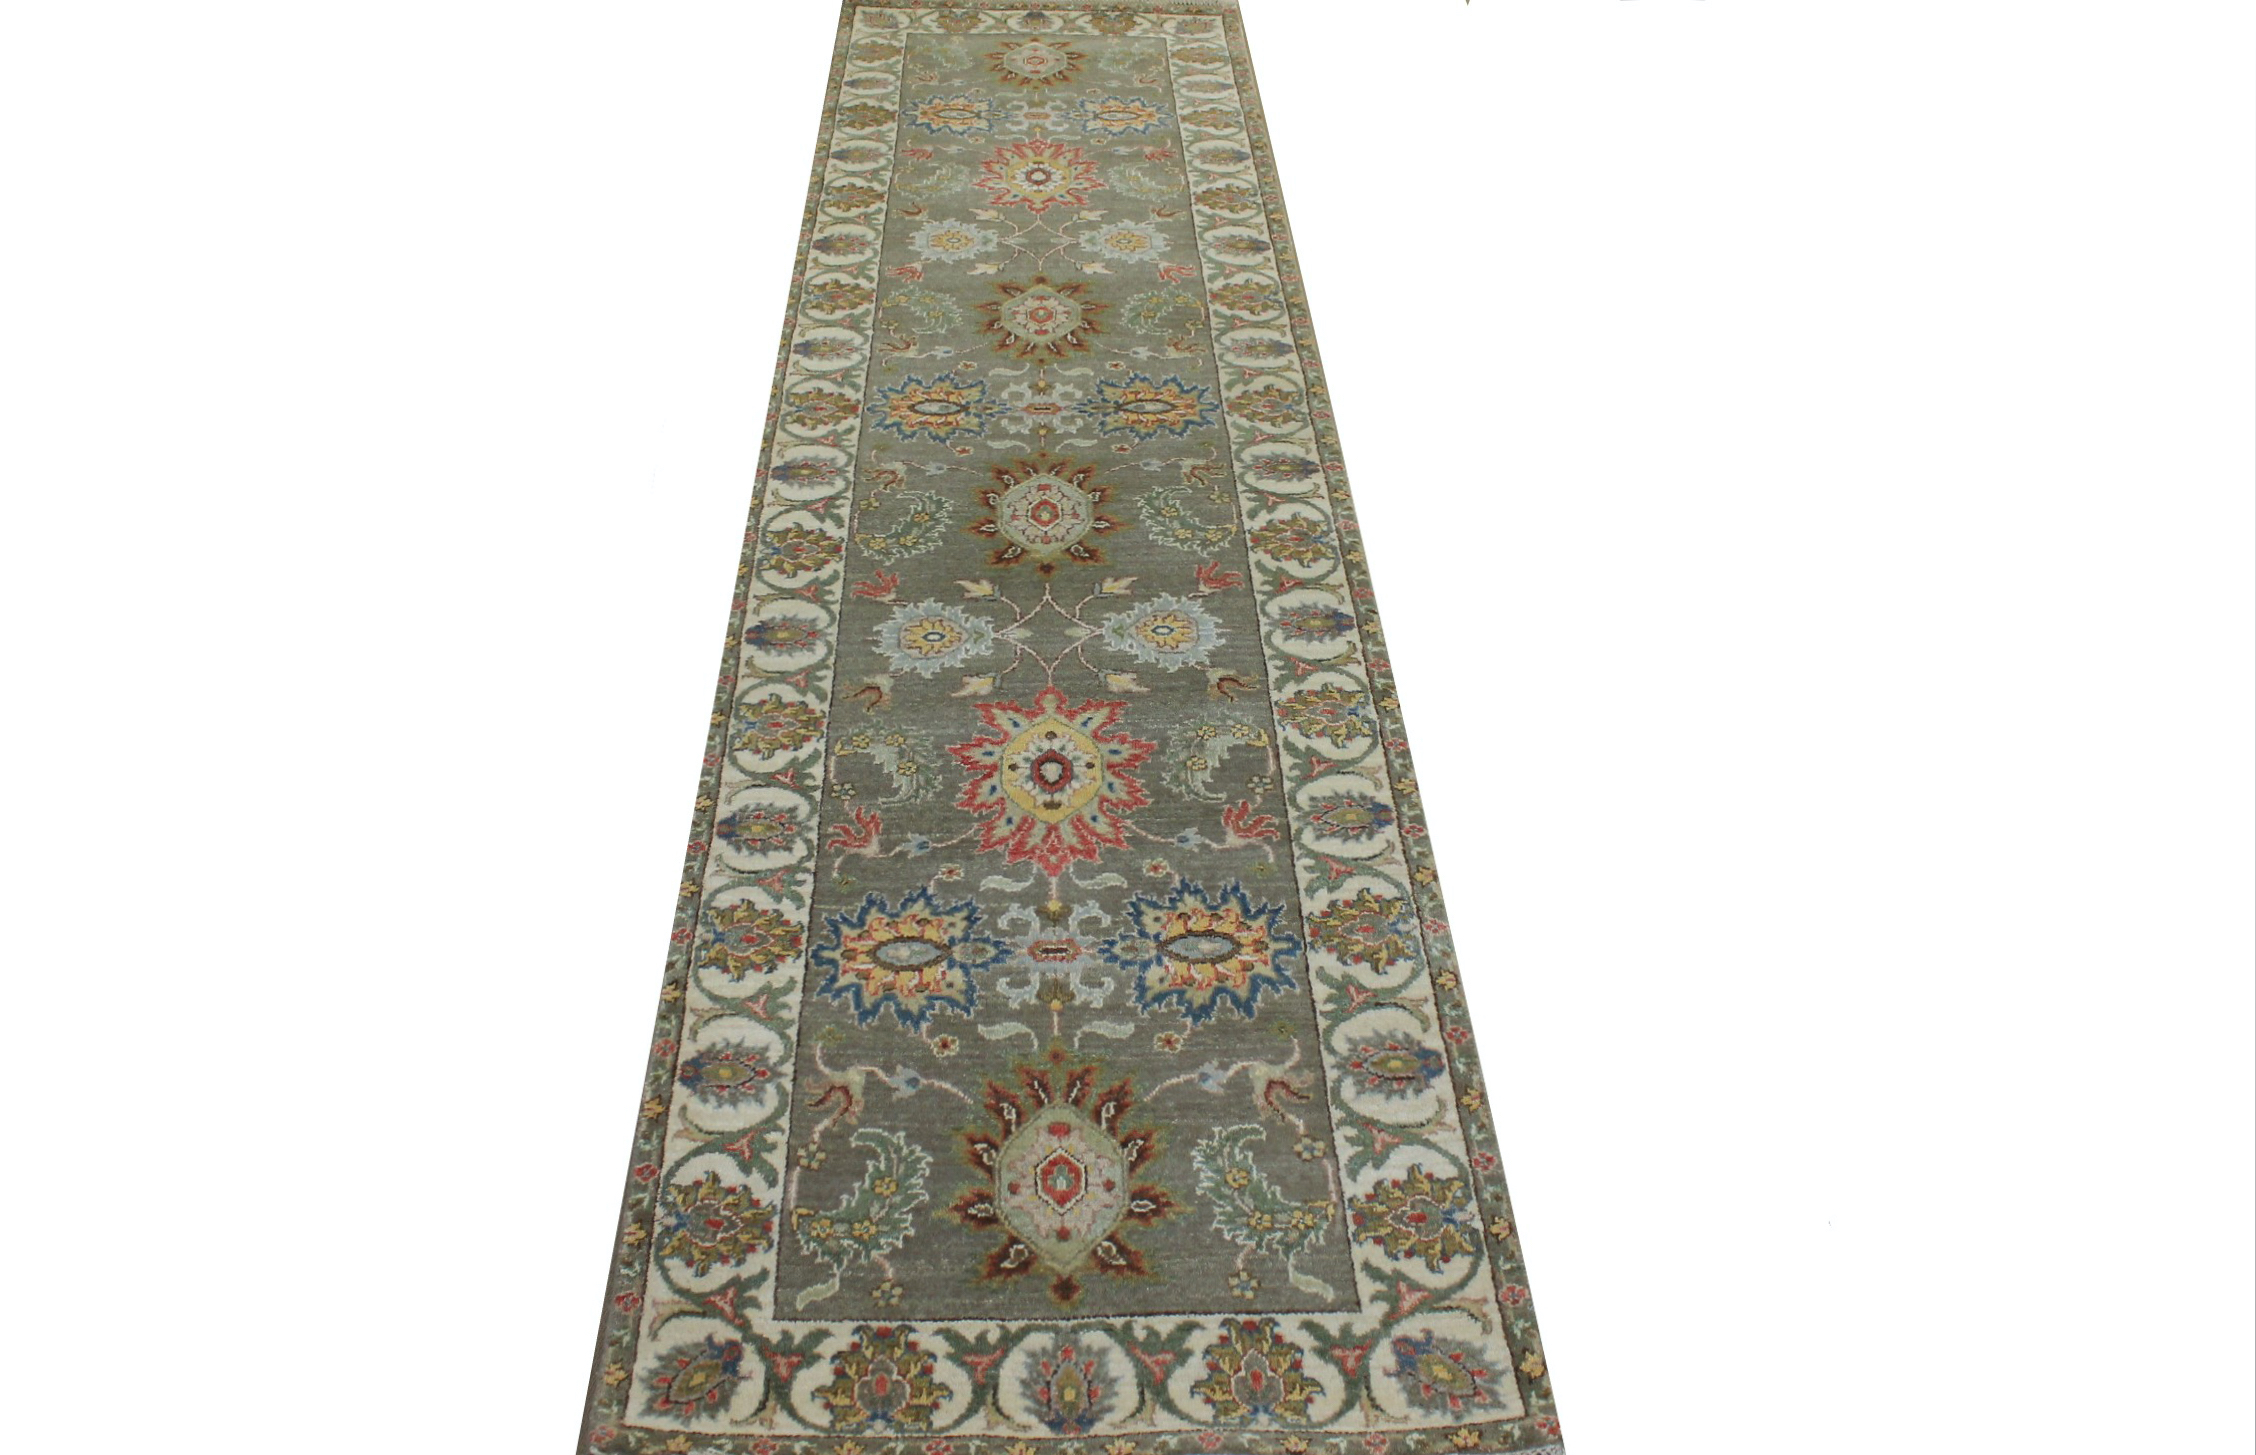 10 ft. Runner Traditional Hand Knotted Wool Area Rug - MR024041